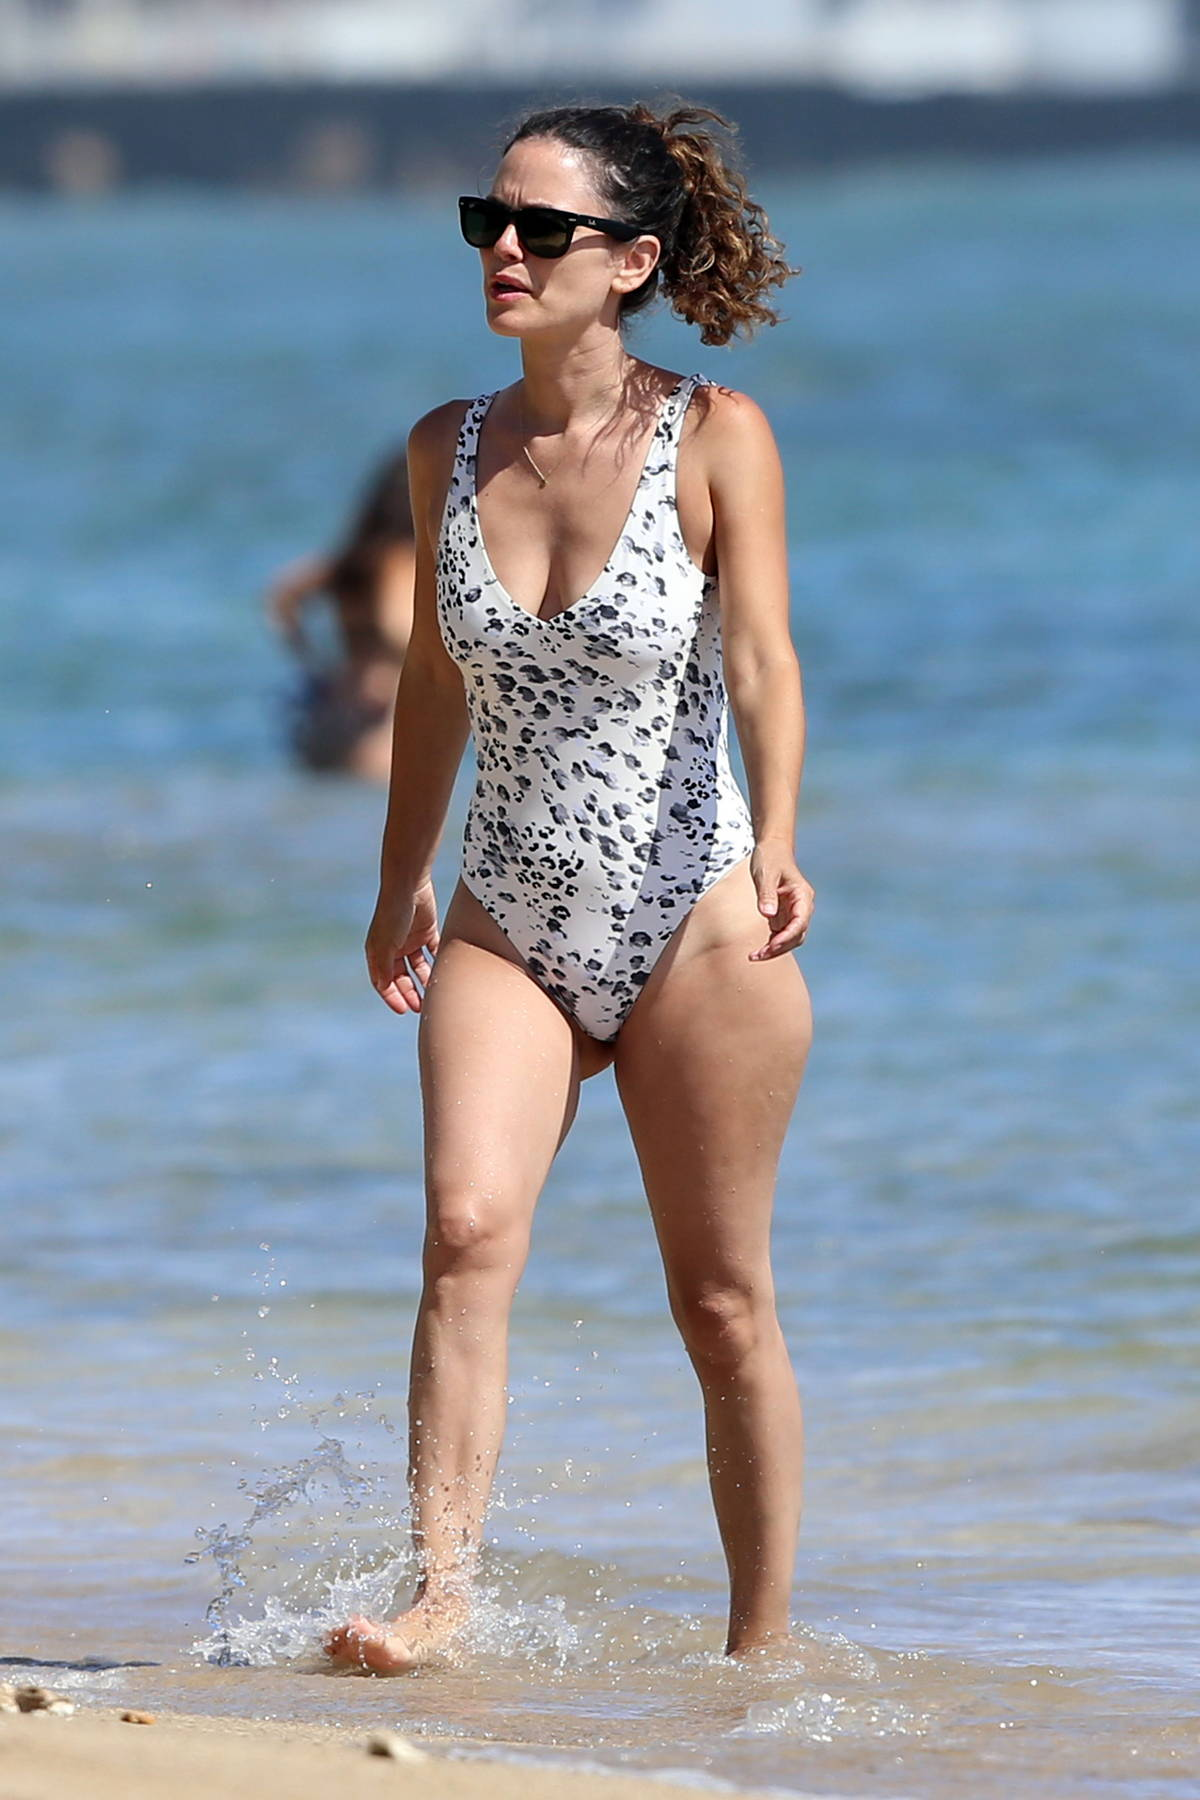 Rachel Bilson looks fab in a patterned swimsuit as she hits the beach while on vacation in Hawaii